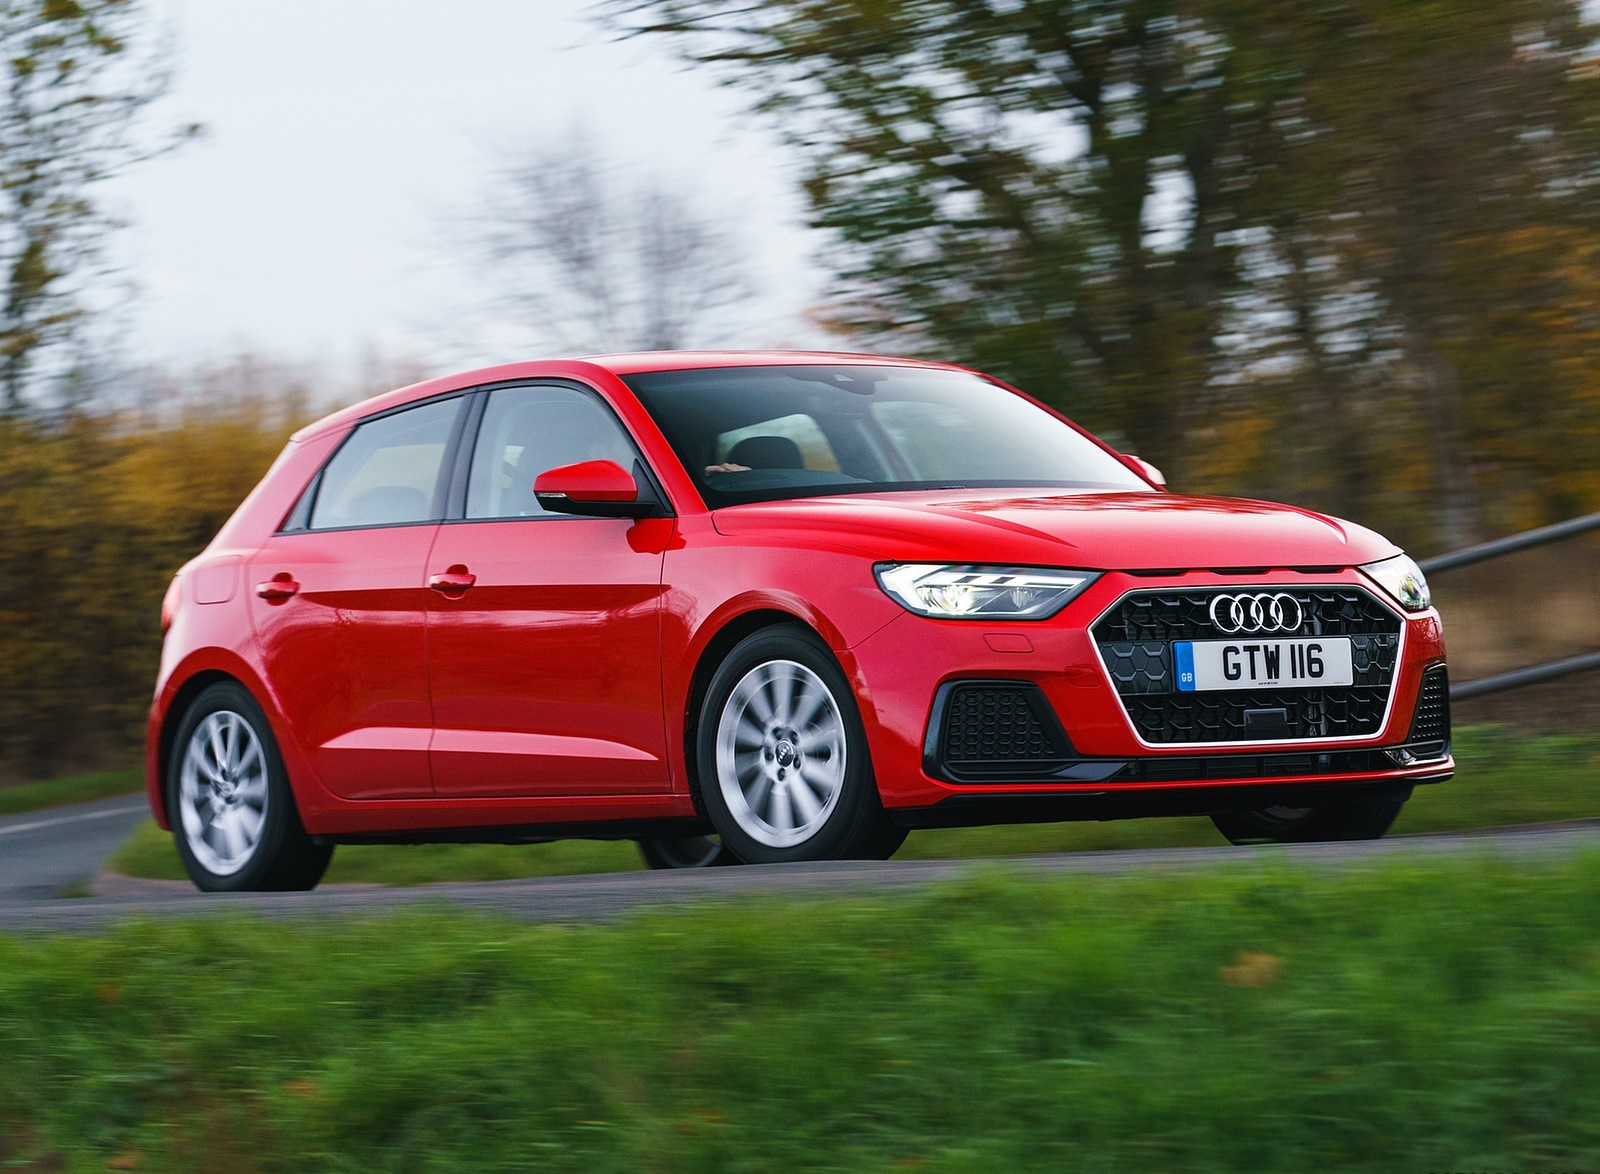 2019 Audi A1 Sportback 30 TFSI (UK-Spec) Front Three-Quarter Wallpapers (13)